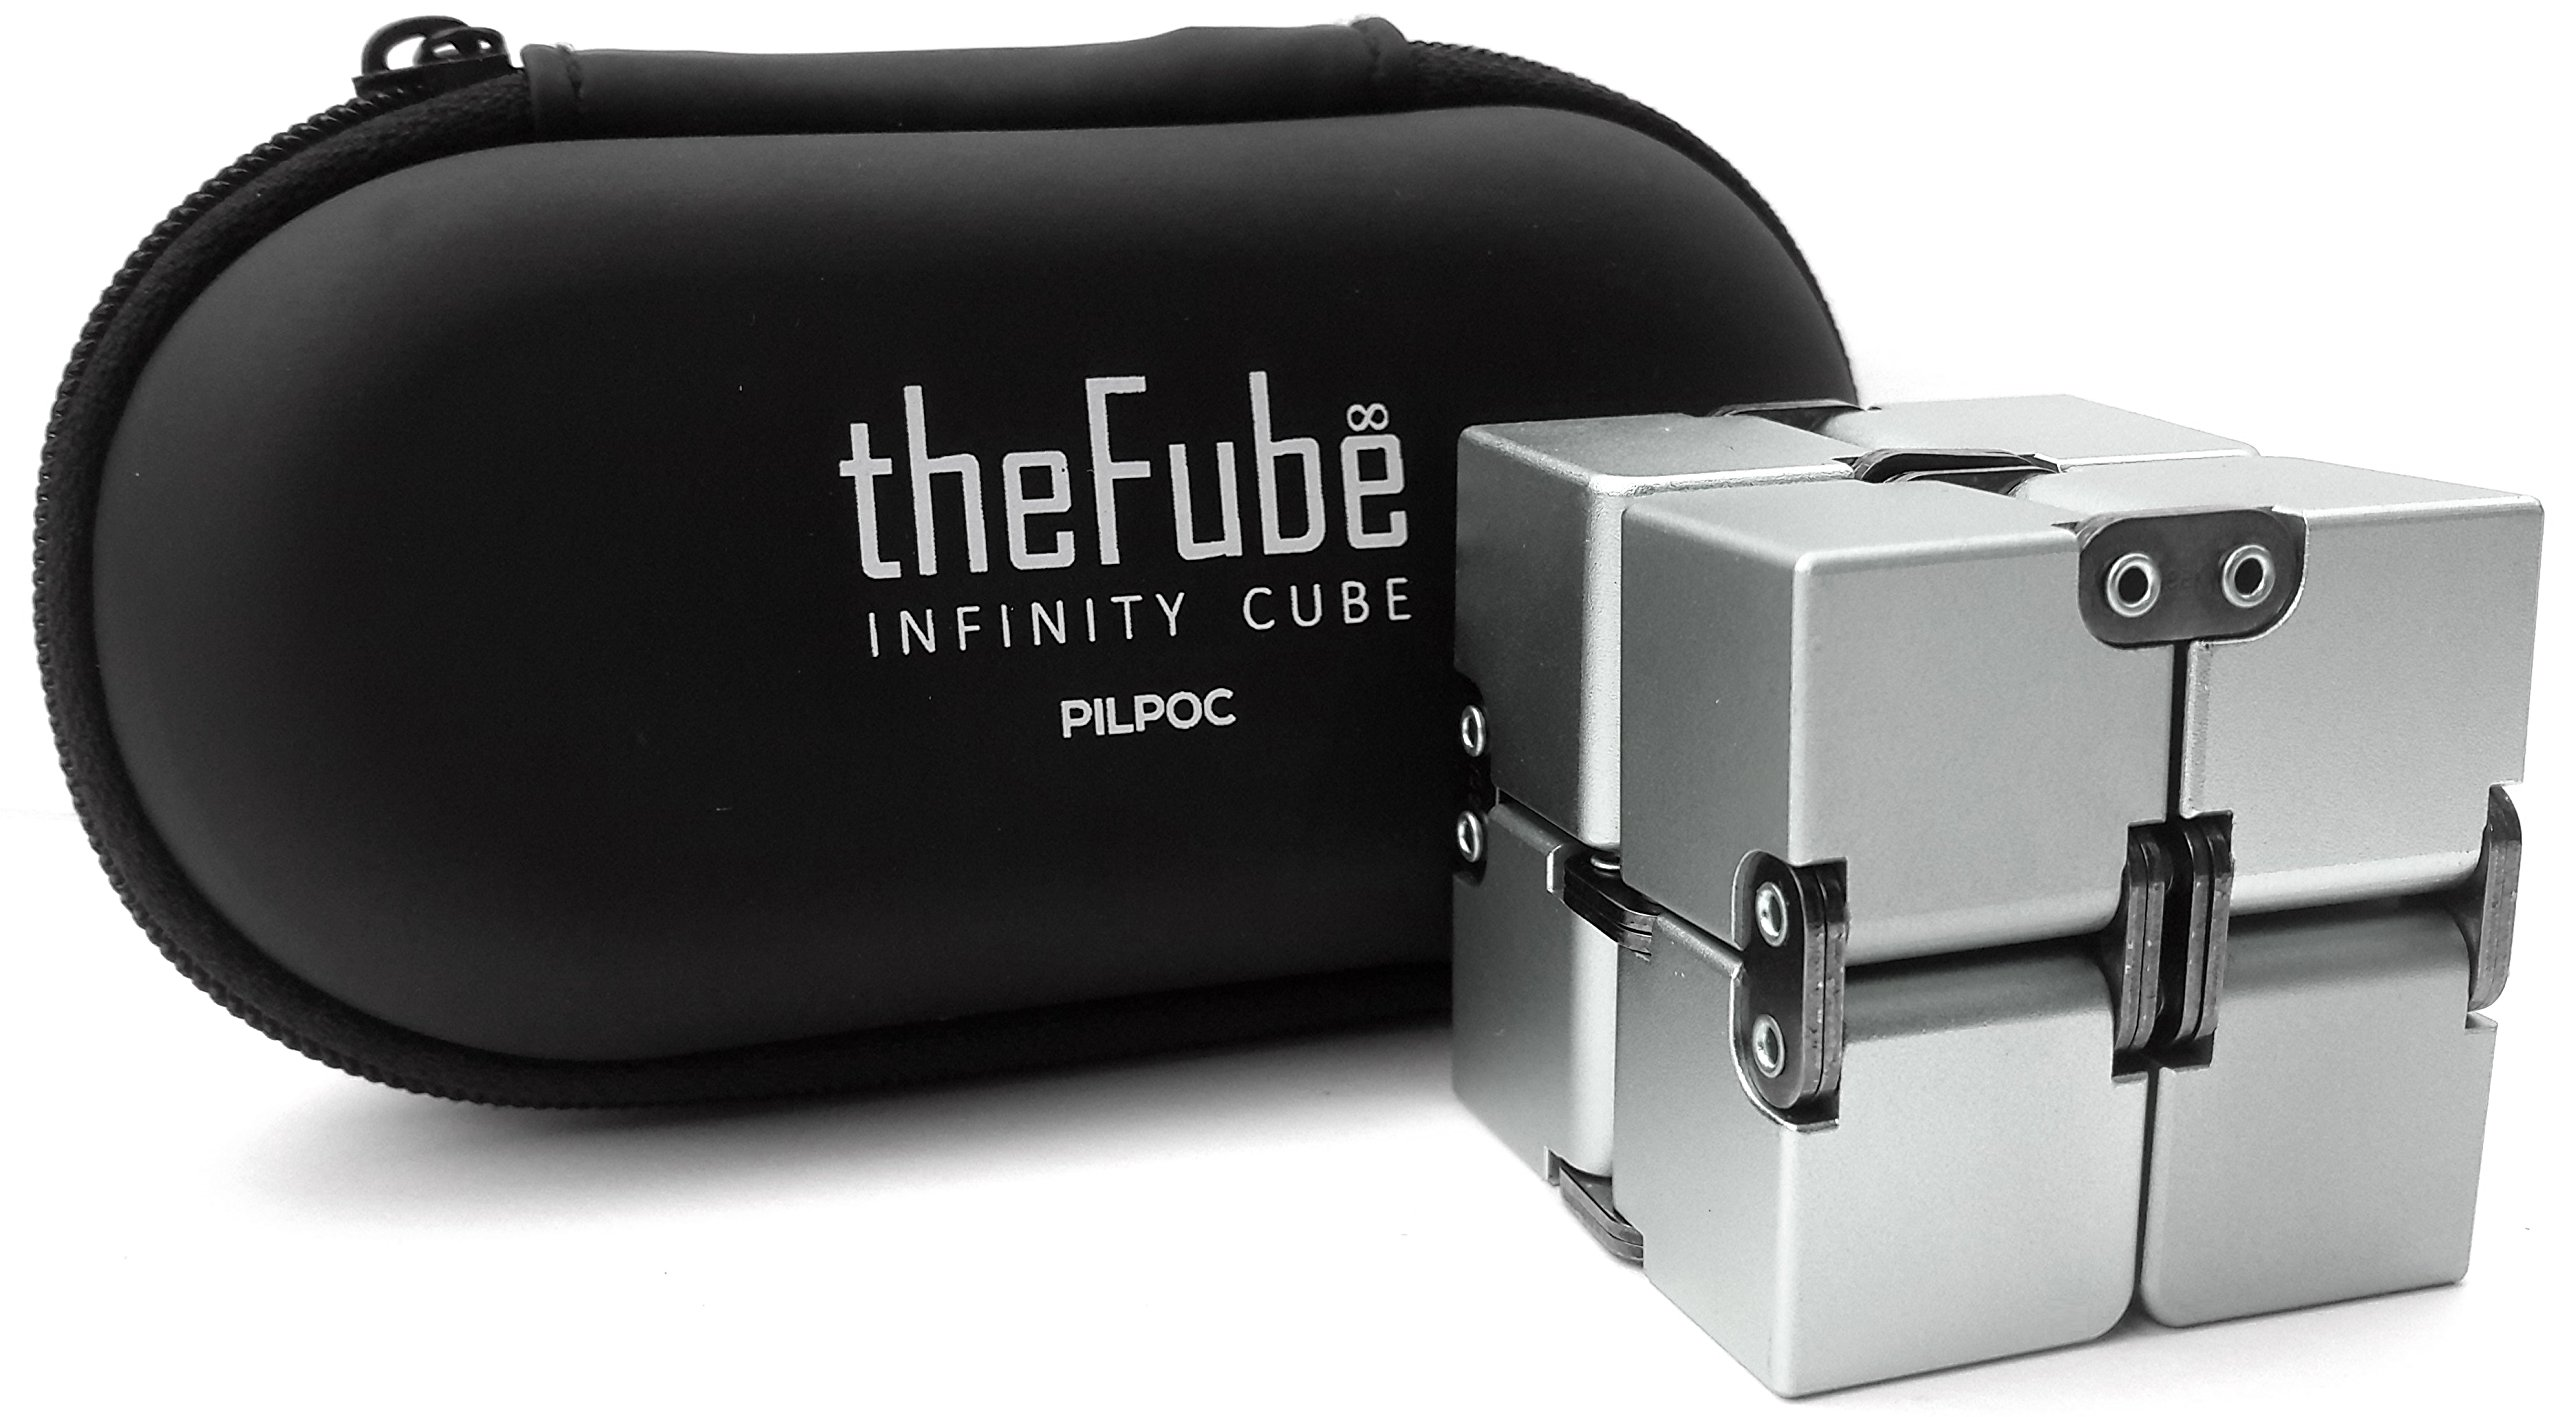 PILPOC theFube Fidget Cube Infinity Cube Desk Toy - Premium Quality Aluminum Infinite Magic Cube with Exclusive Case, Sturdy, Heavy, Relieve Stress and Anxiety, for ADD, ADHD, OCD (Silver) by PILPOC